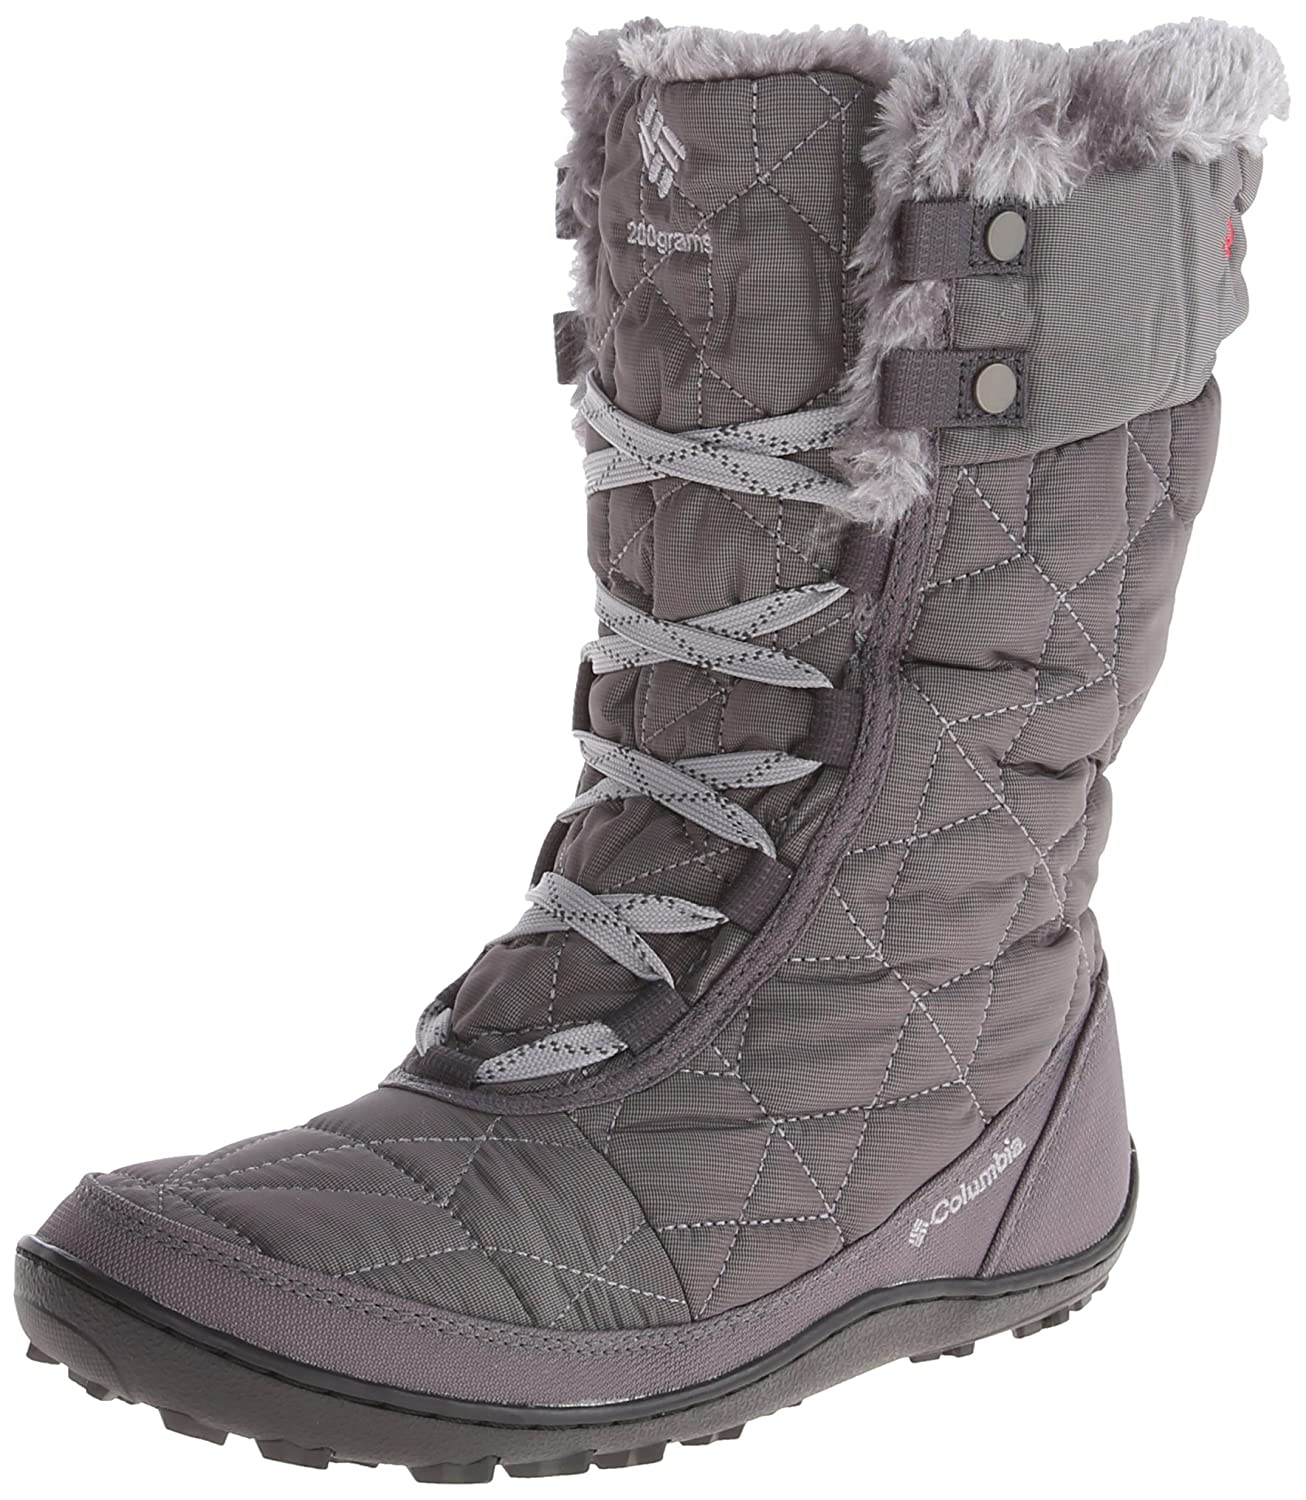 Columbia Women's Minx Mid II Omni-Heat Winter Boot B00GW8GOLI 8 B(M) US|Shale, Bright Red